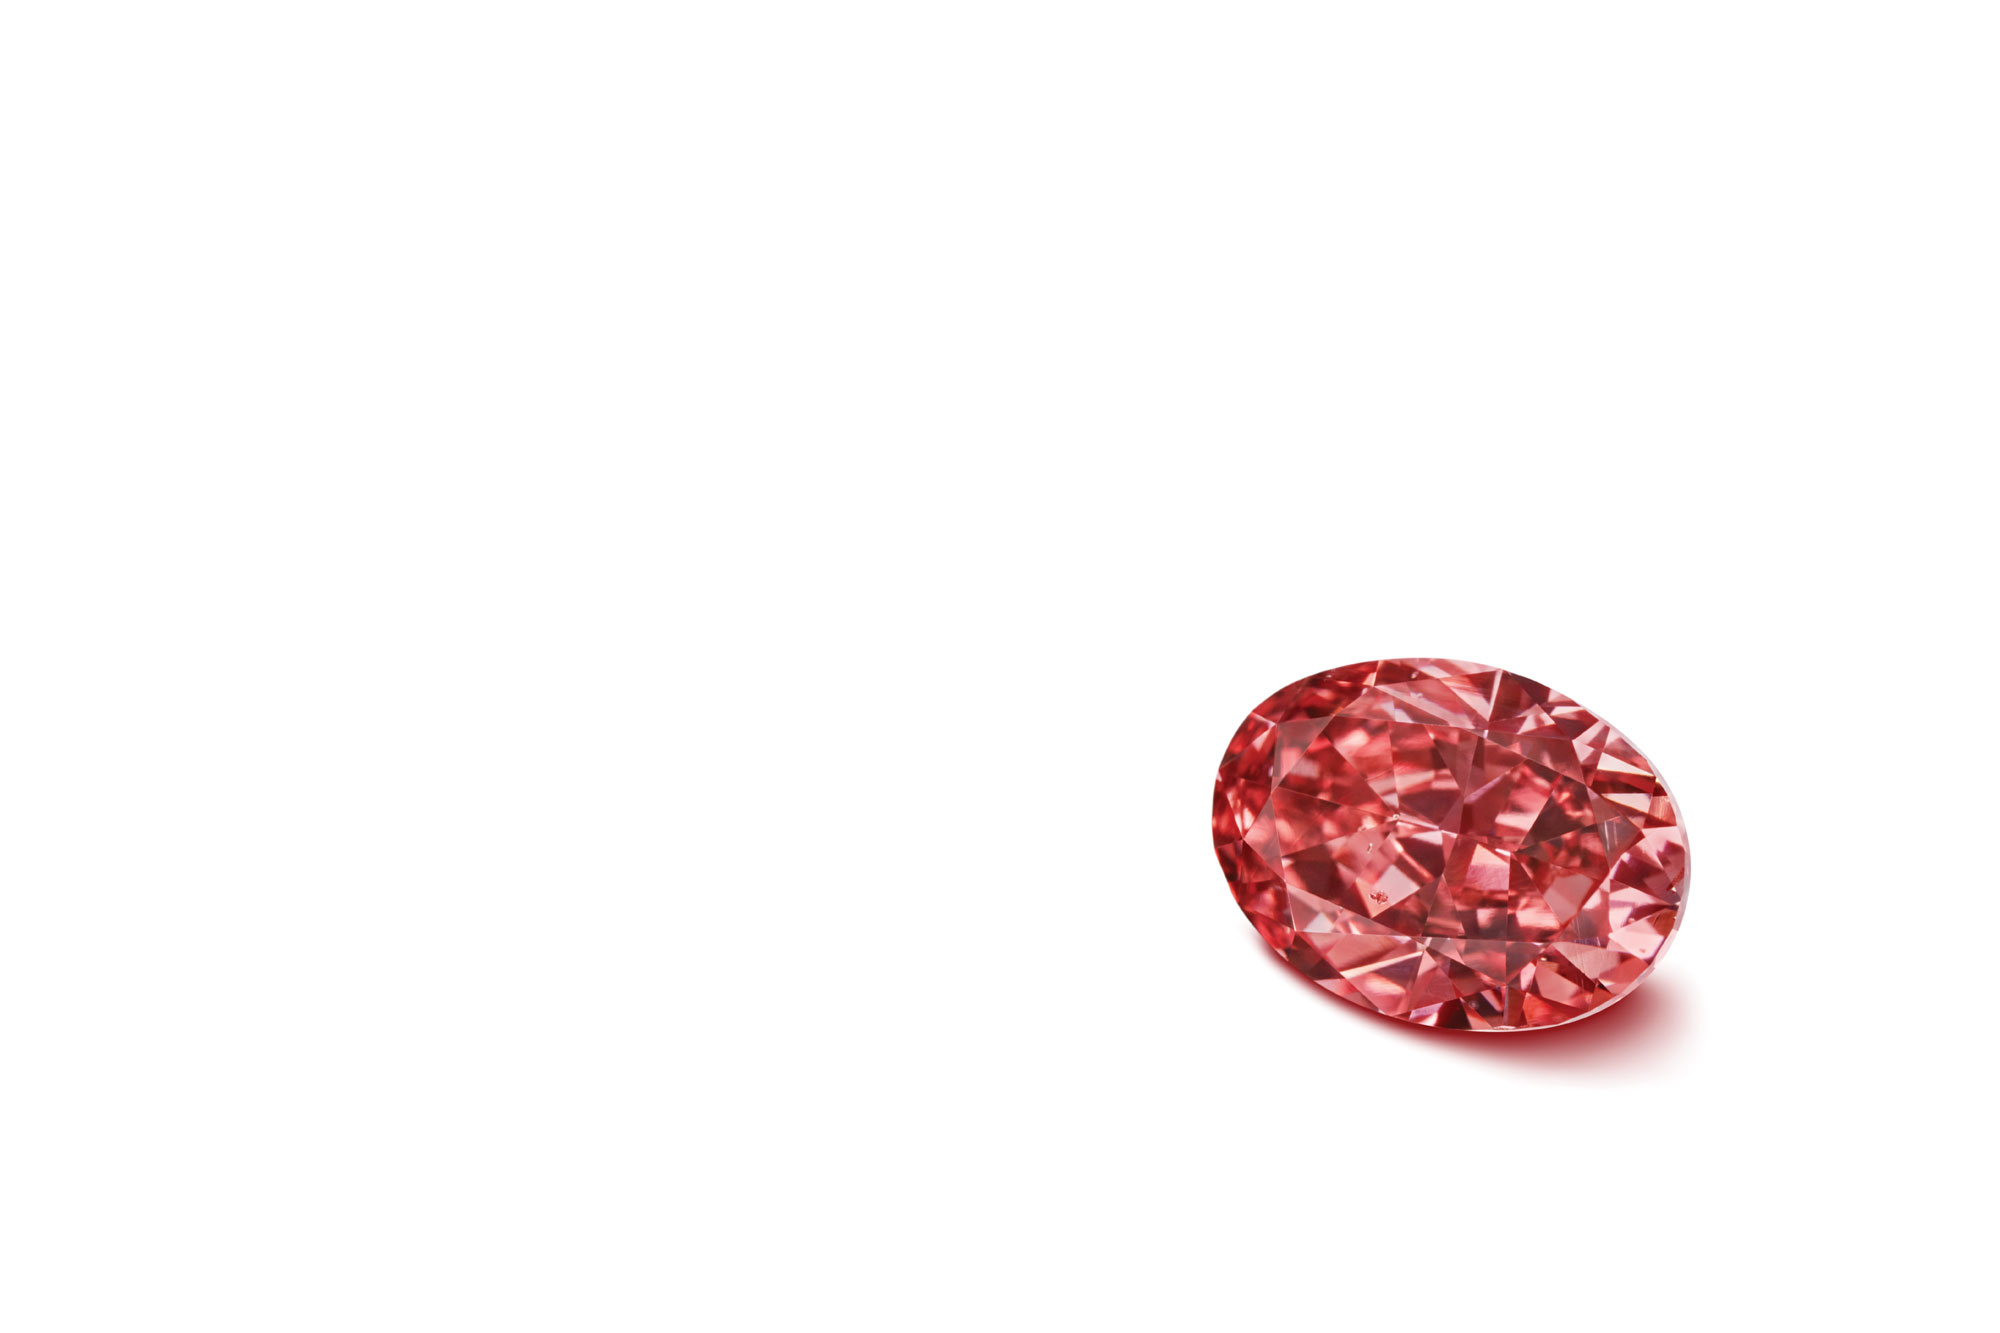 Argyle Kaline Fancy Deep Pink Diamond